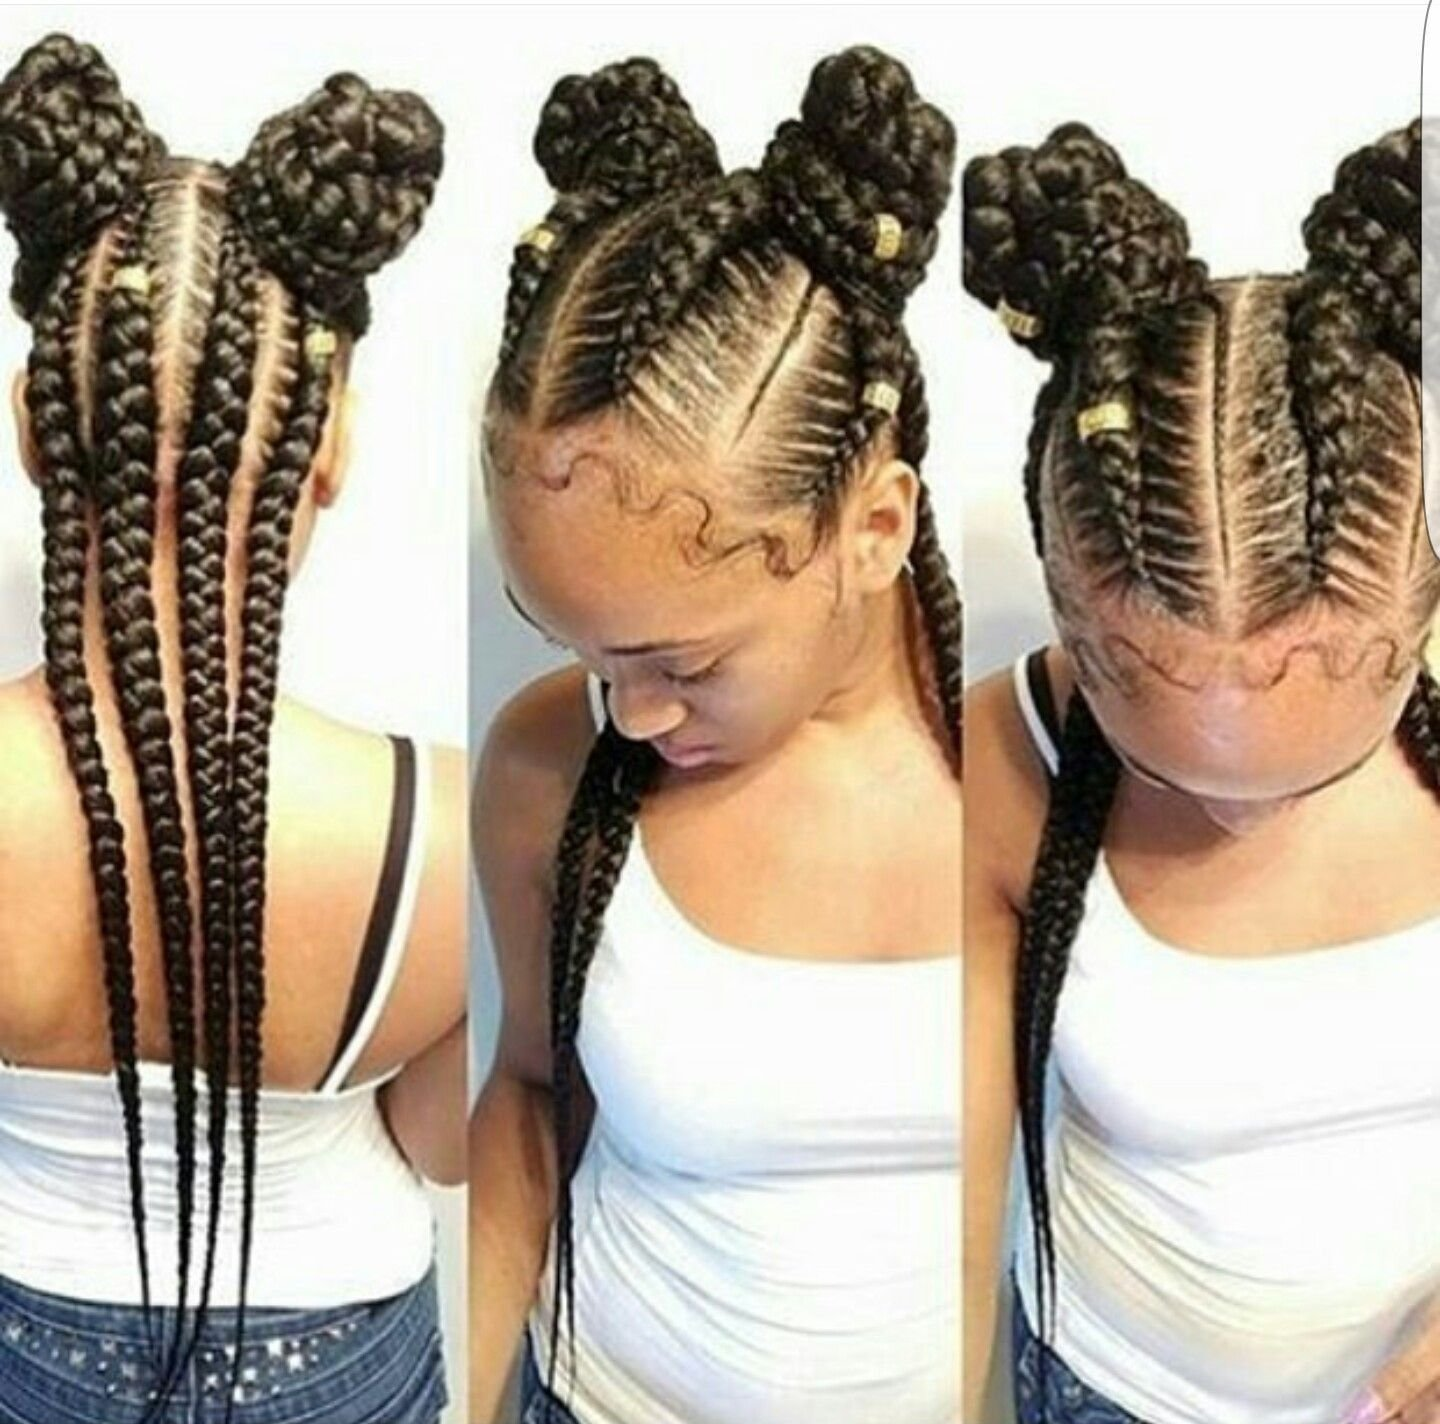 The Best Pinterest Joniwhite219 ♕Hδir♕ Hair Styles Curly Hair Styles Braided Hairstyles Pictures